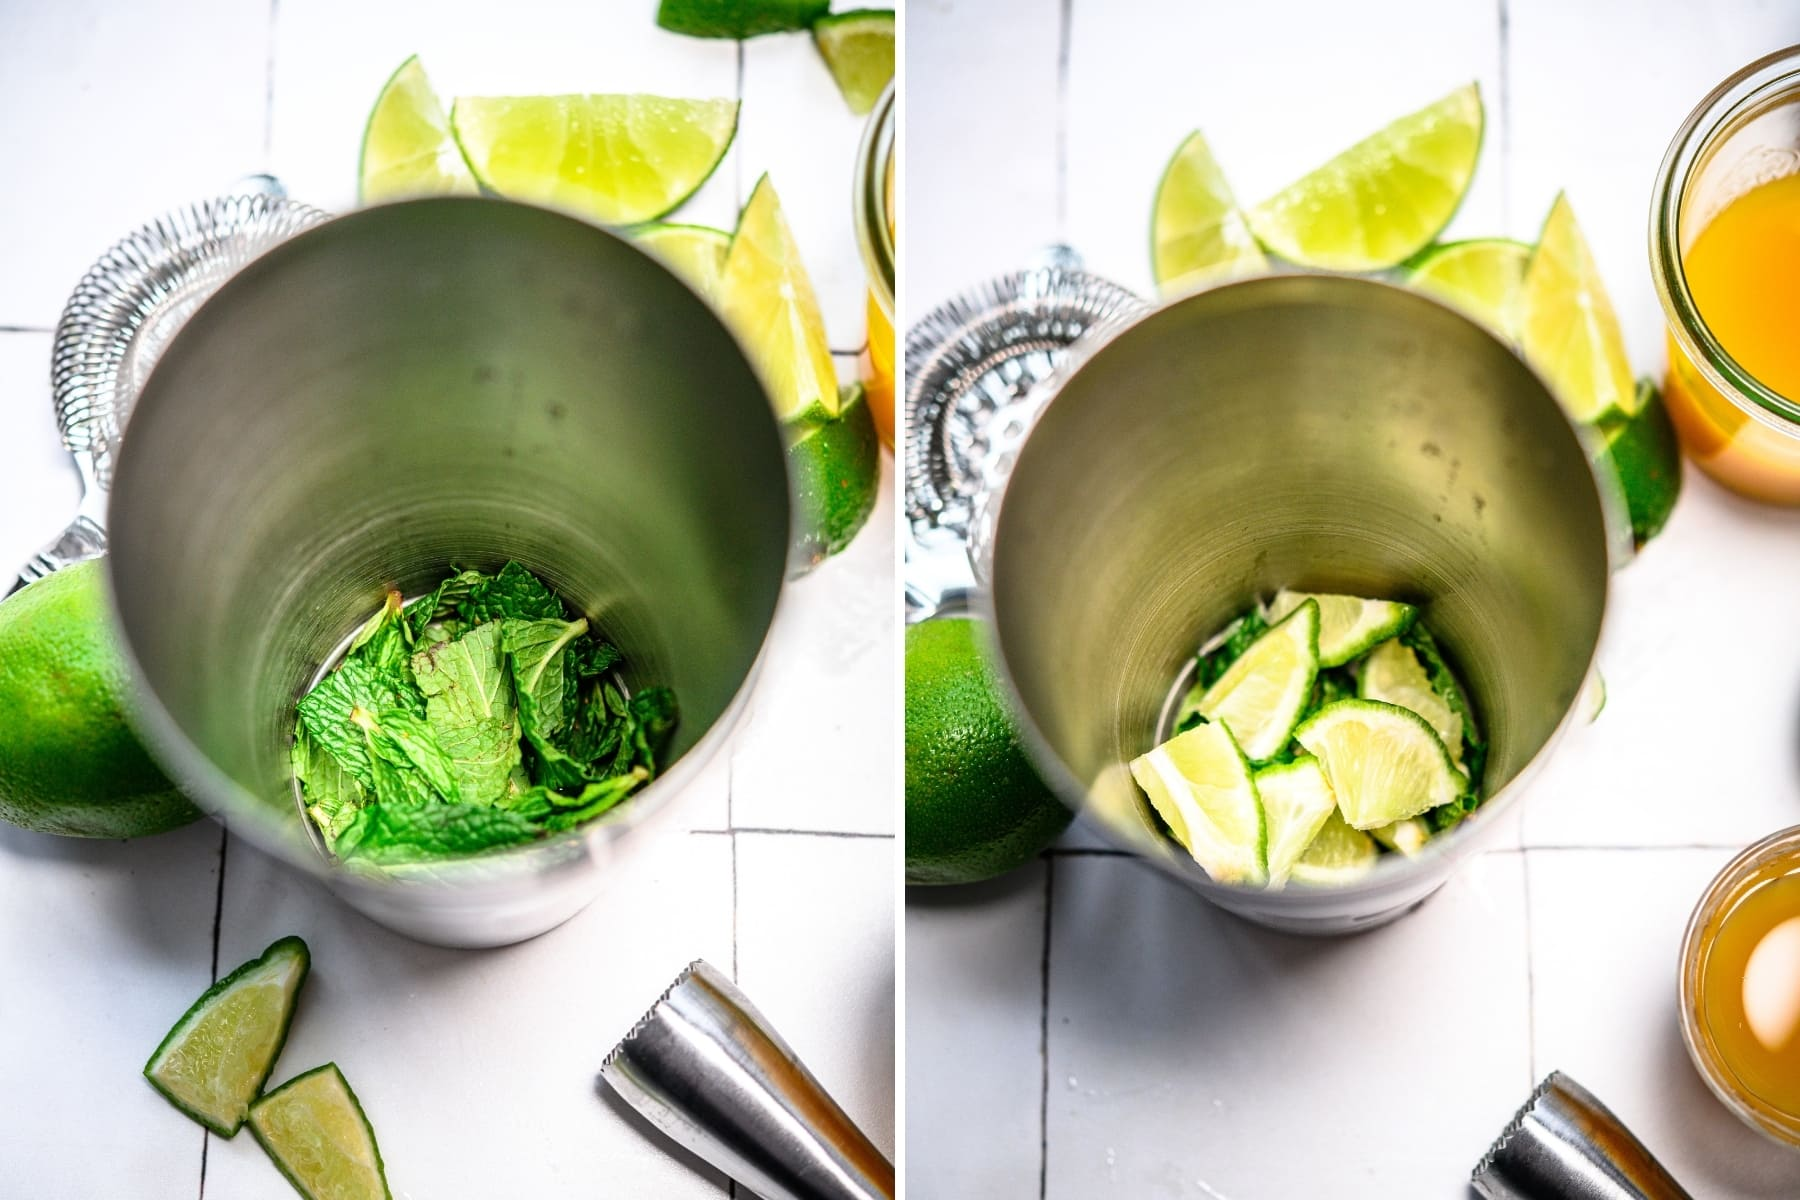 on the left side: mint in cocktail shaker. On the right side, mint and limes in cocktail shaker.